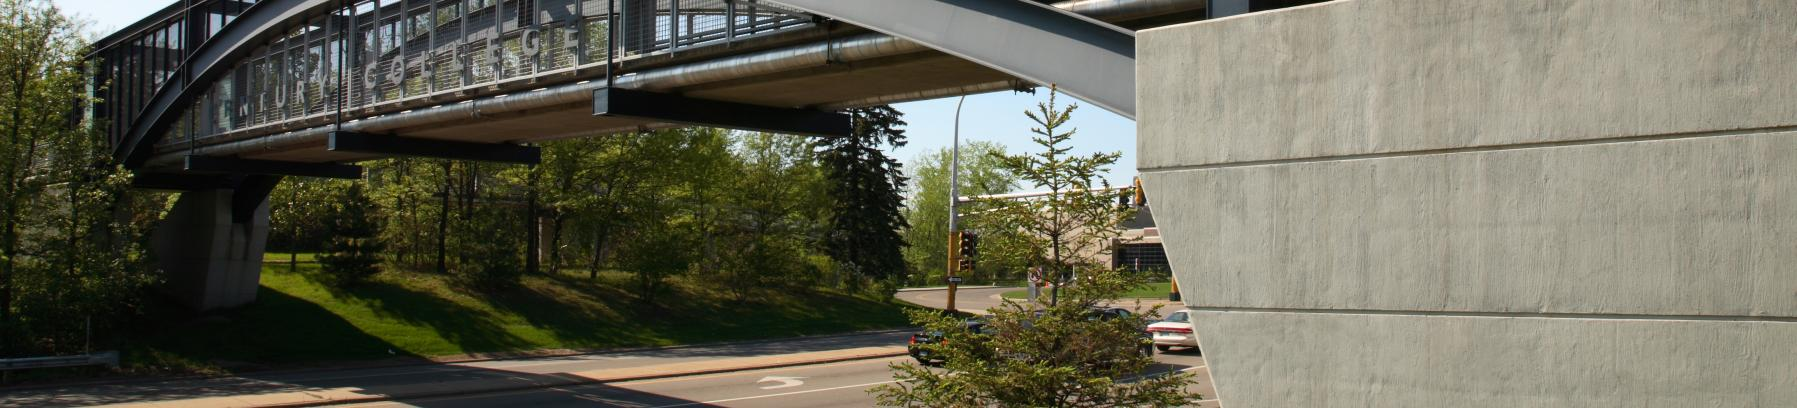 Image of Century College bridge.